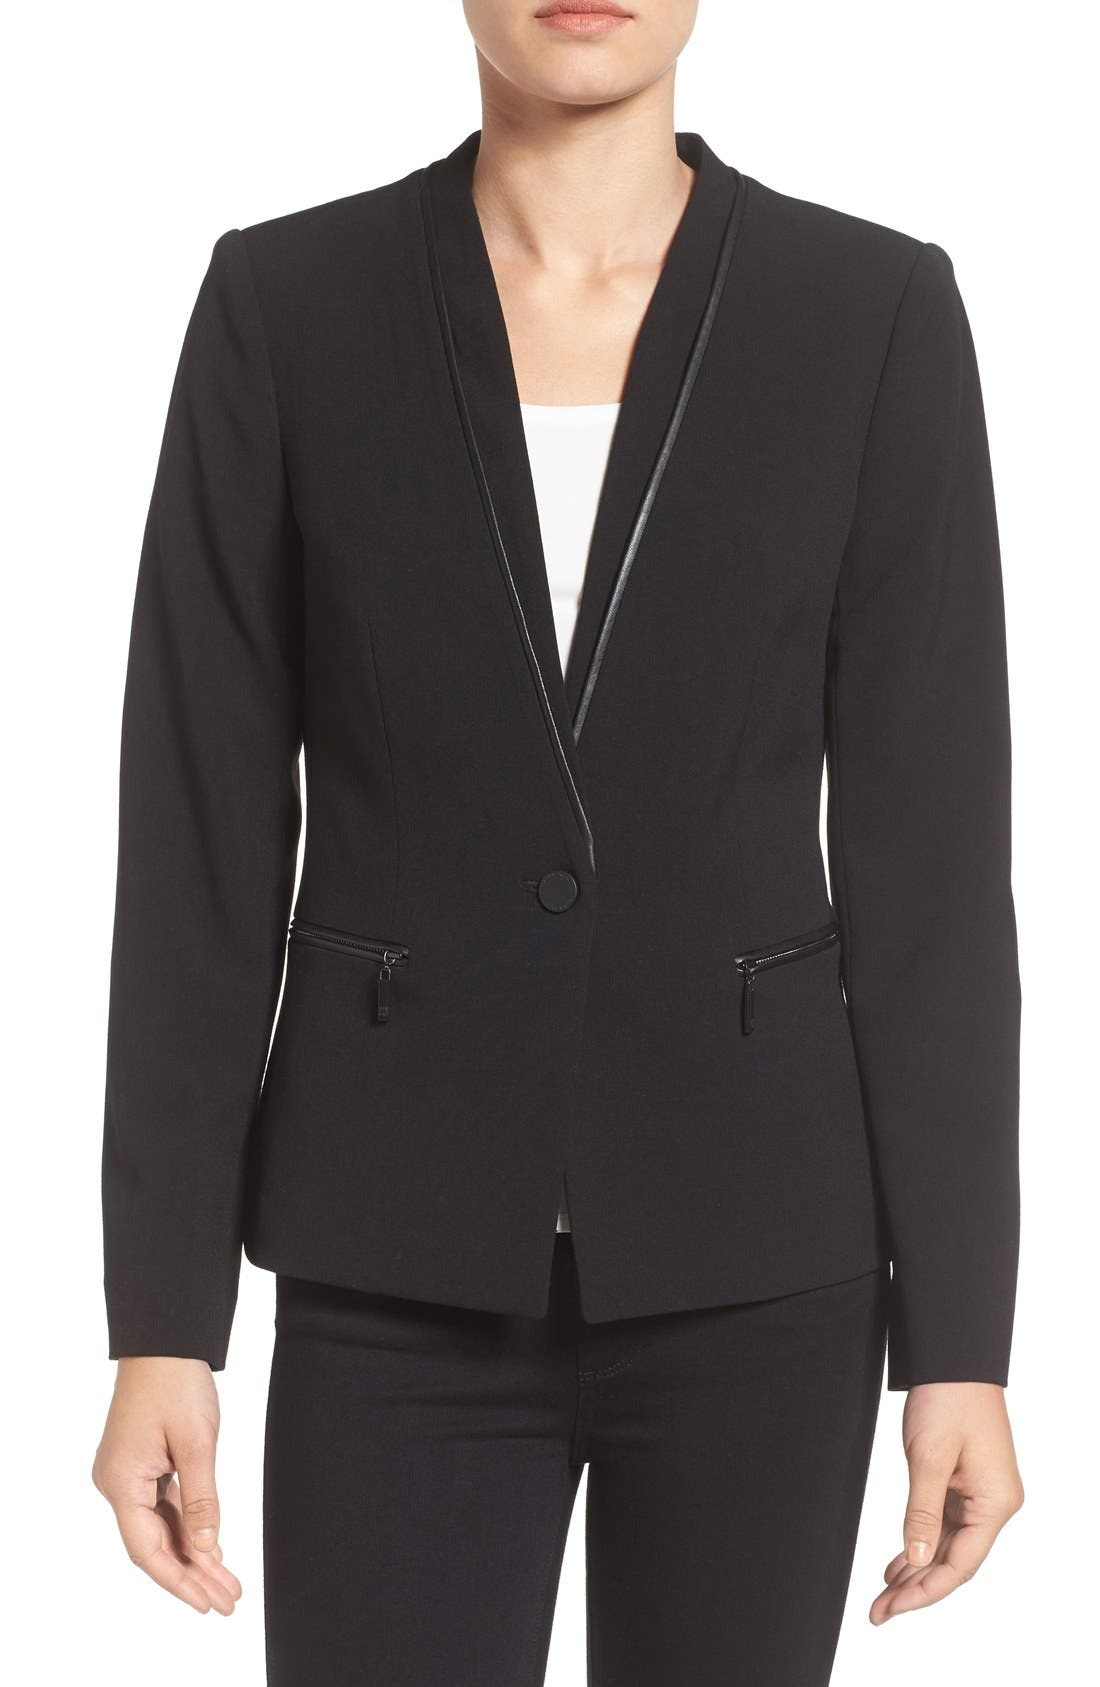 Alternate Image 1 Selected - Ivanka Trump Faux Leather Trim Suit Jacket